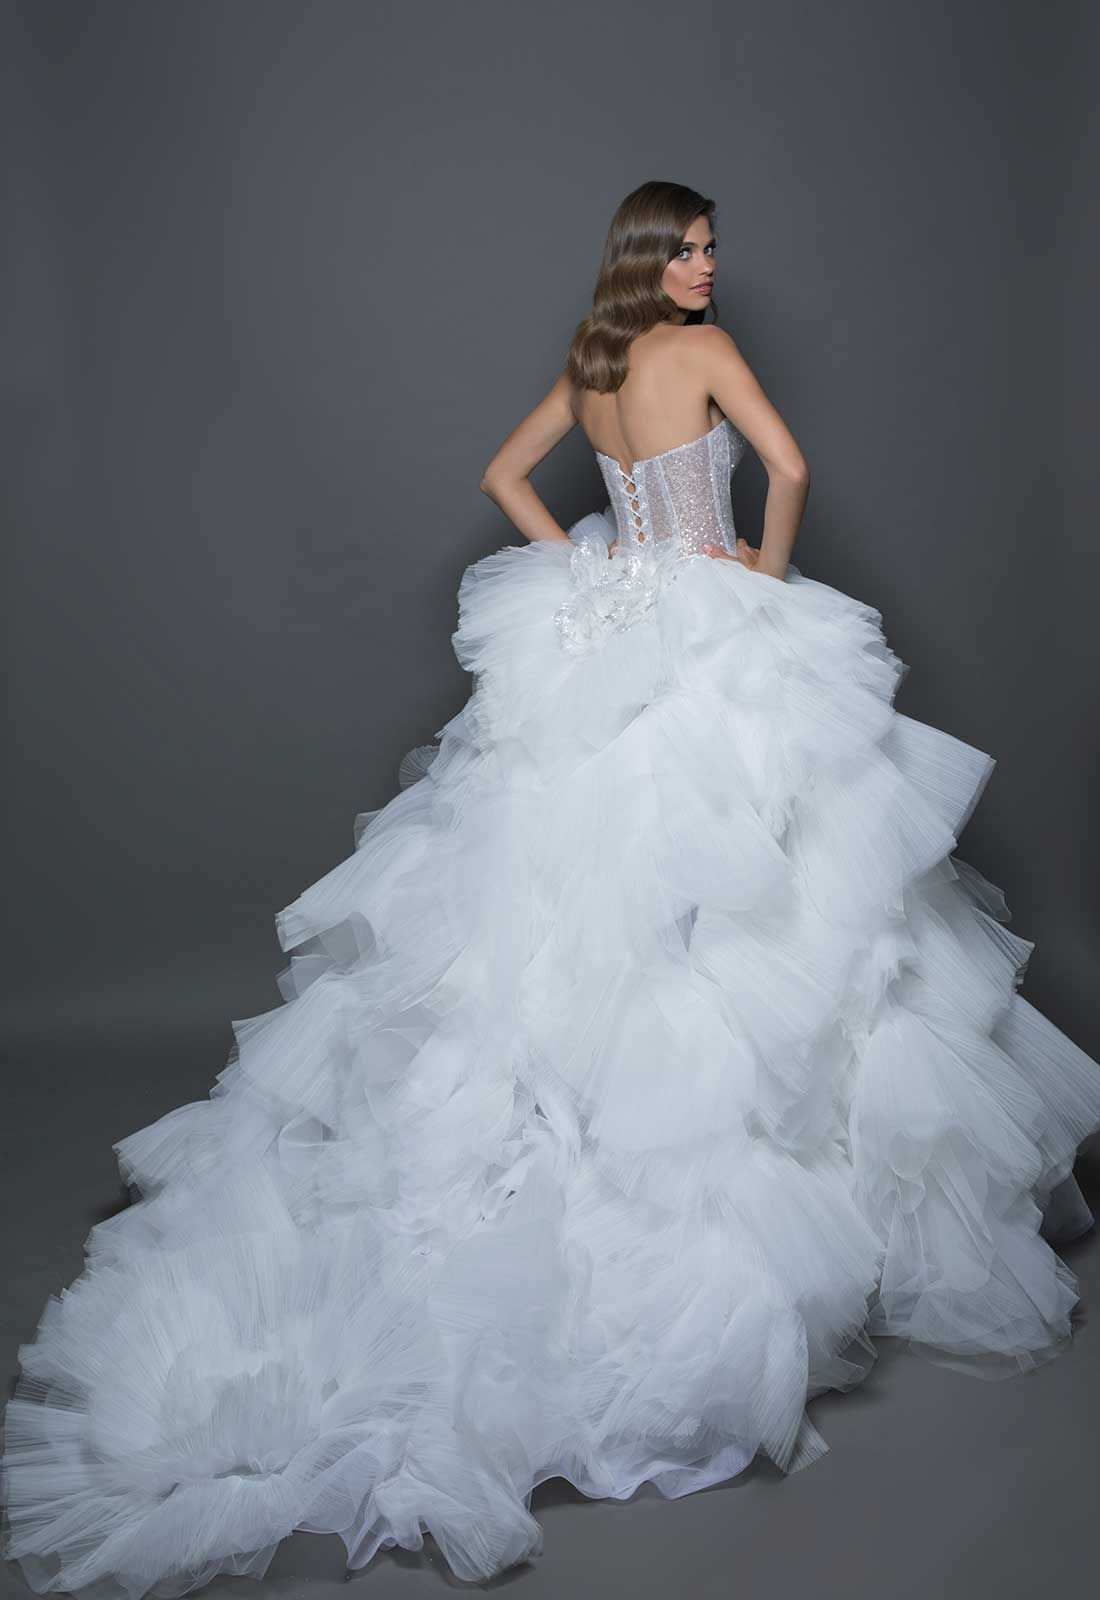 STYLE NO. 14604 CORSET AND 14602 SKIRT | Someday the Big Day ...